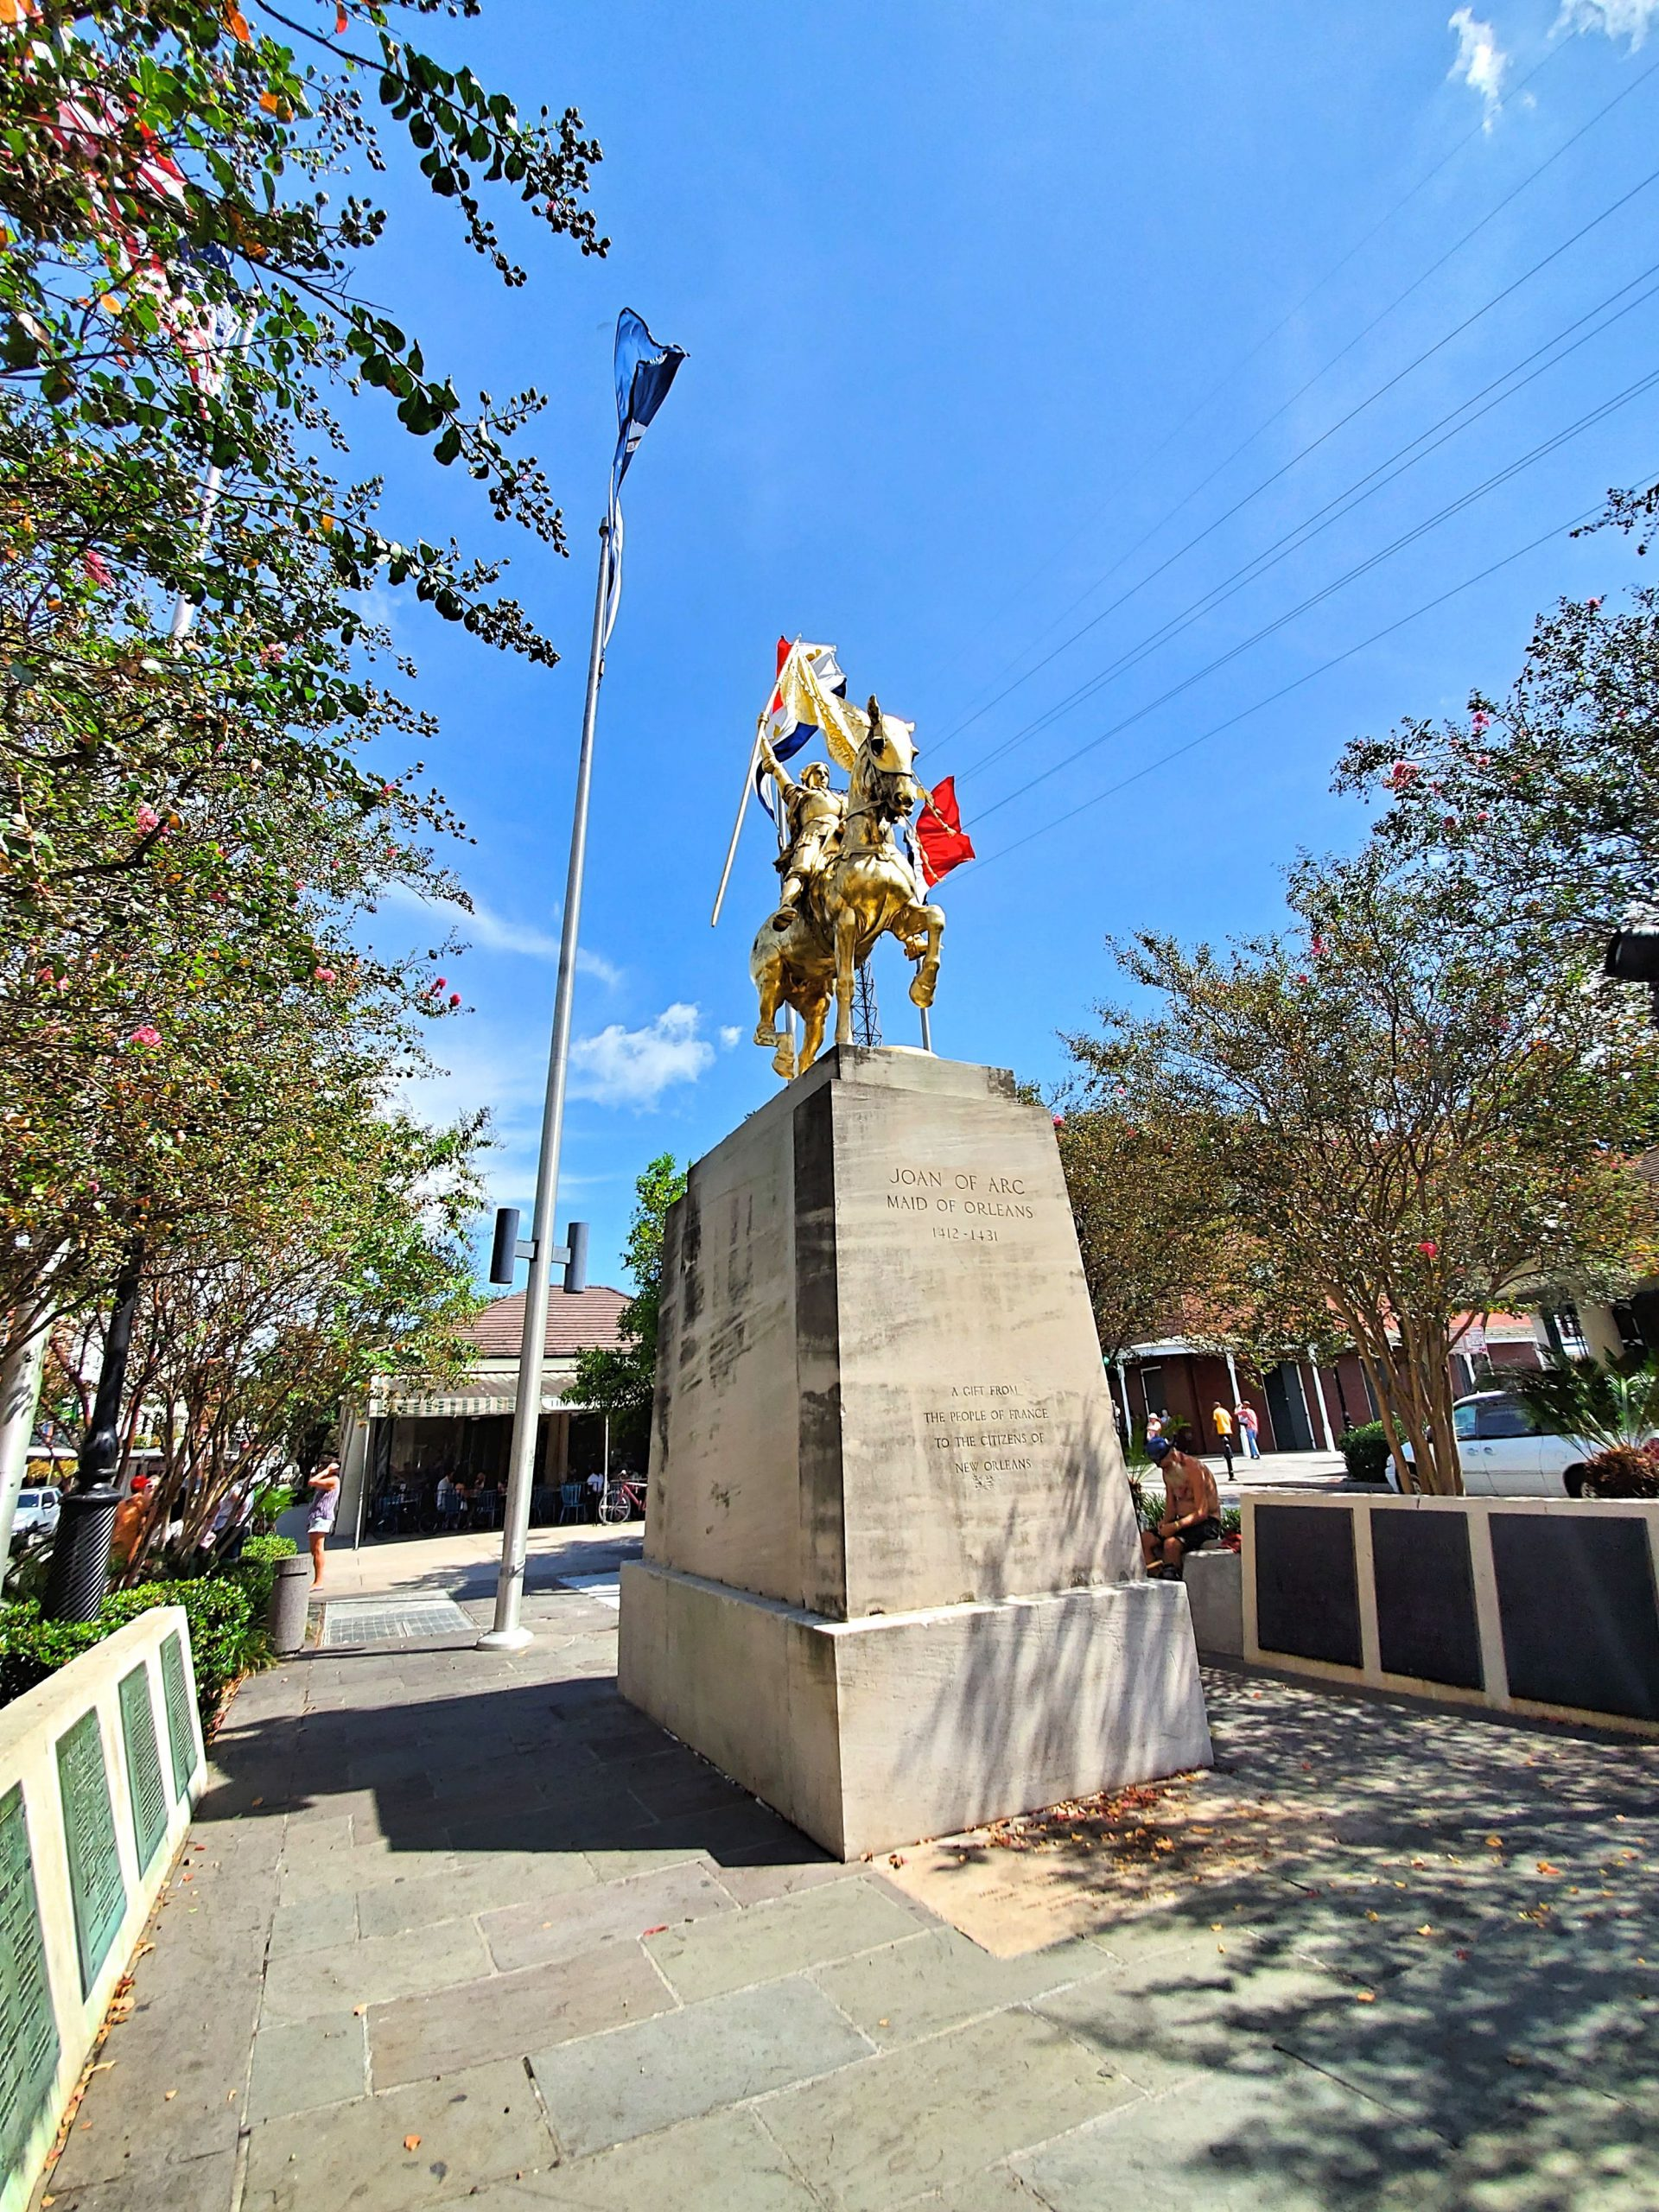 Joan of Arc statue at French Quarter - yoursassyself.com